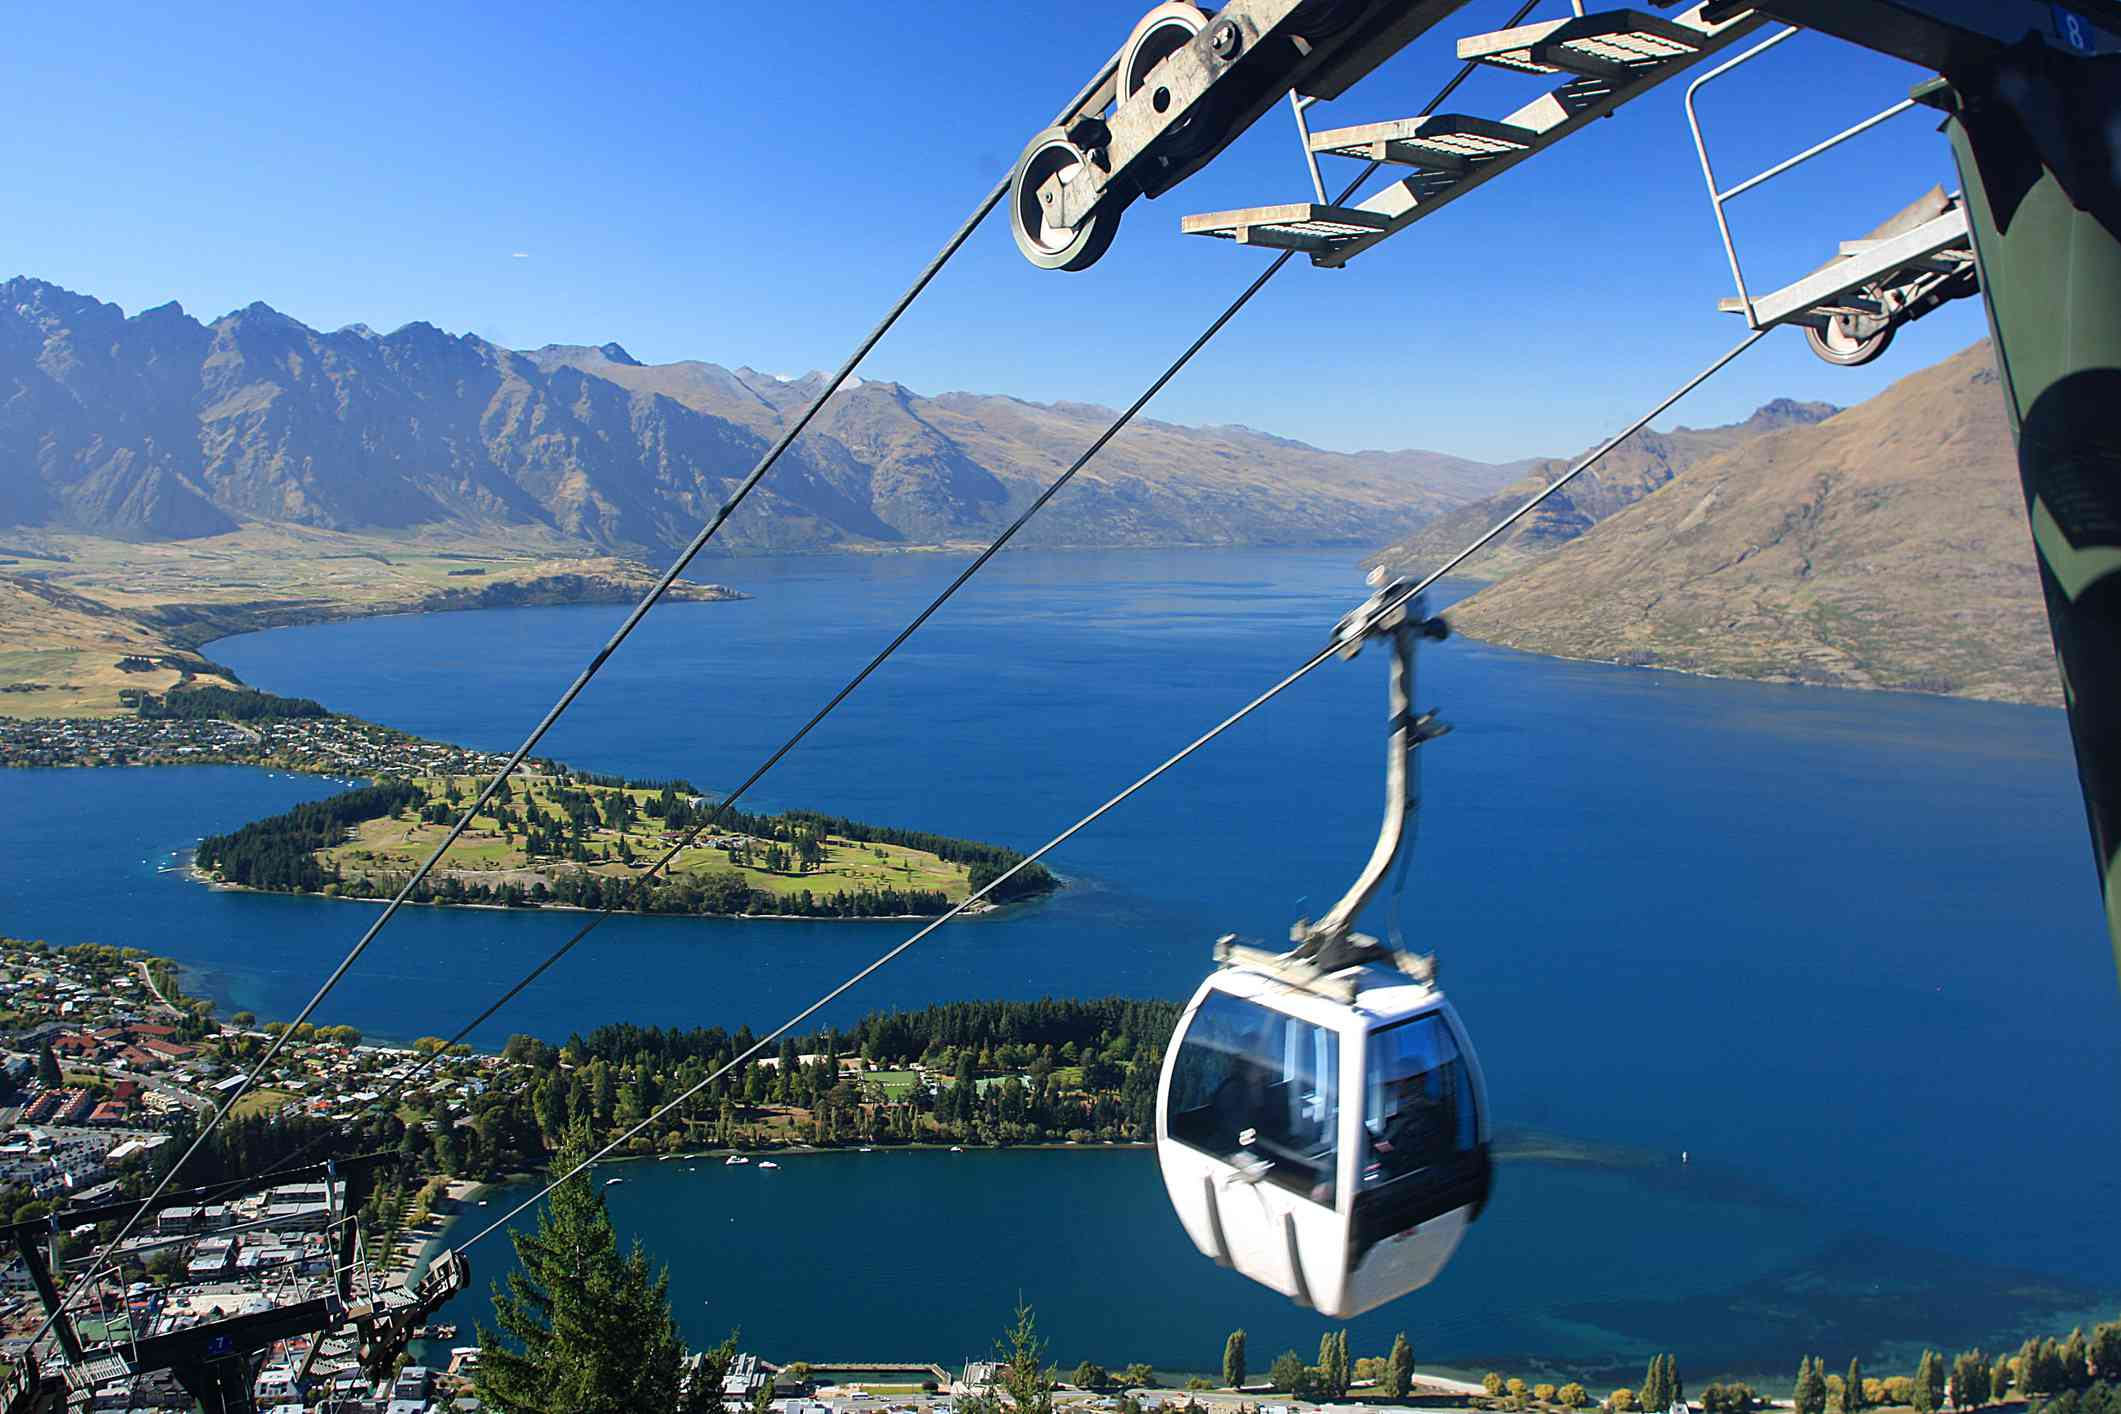 cable car above city and lake with mountains in background